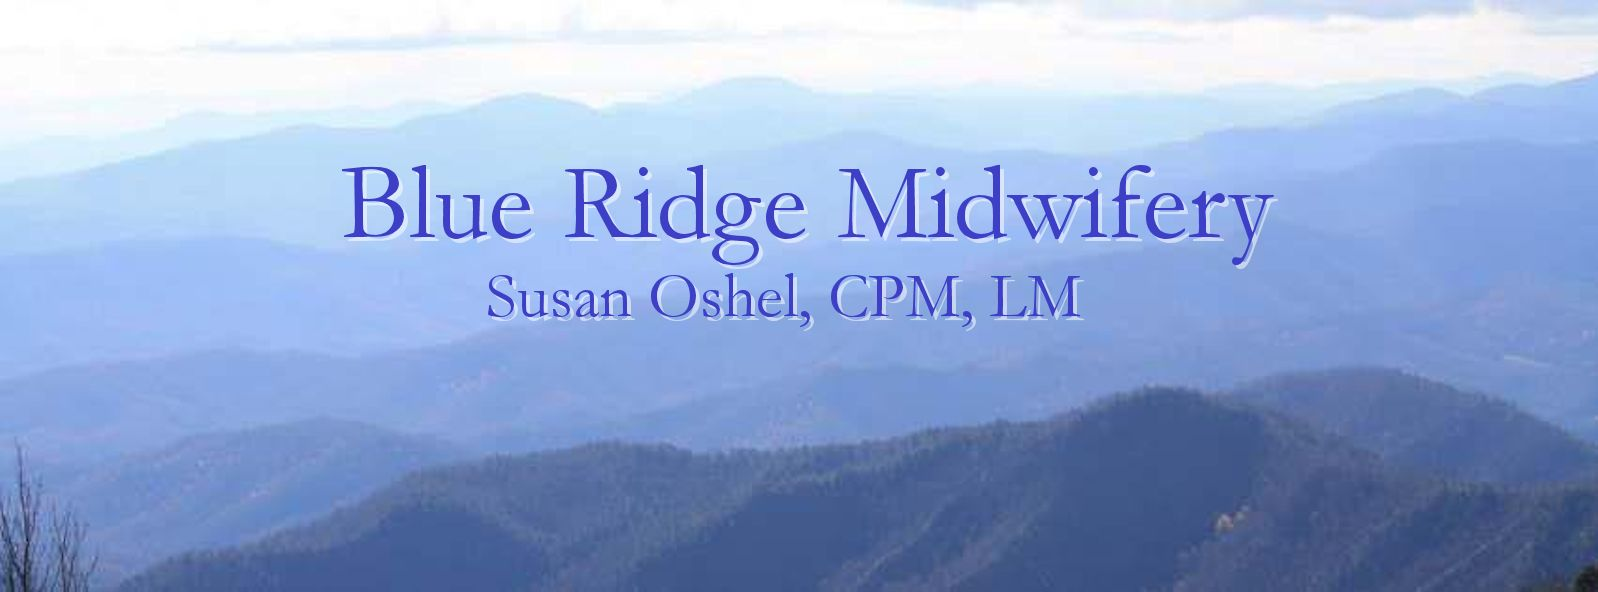 Blue Ridge Midwifery